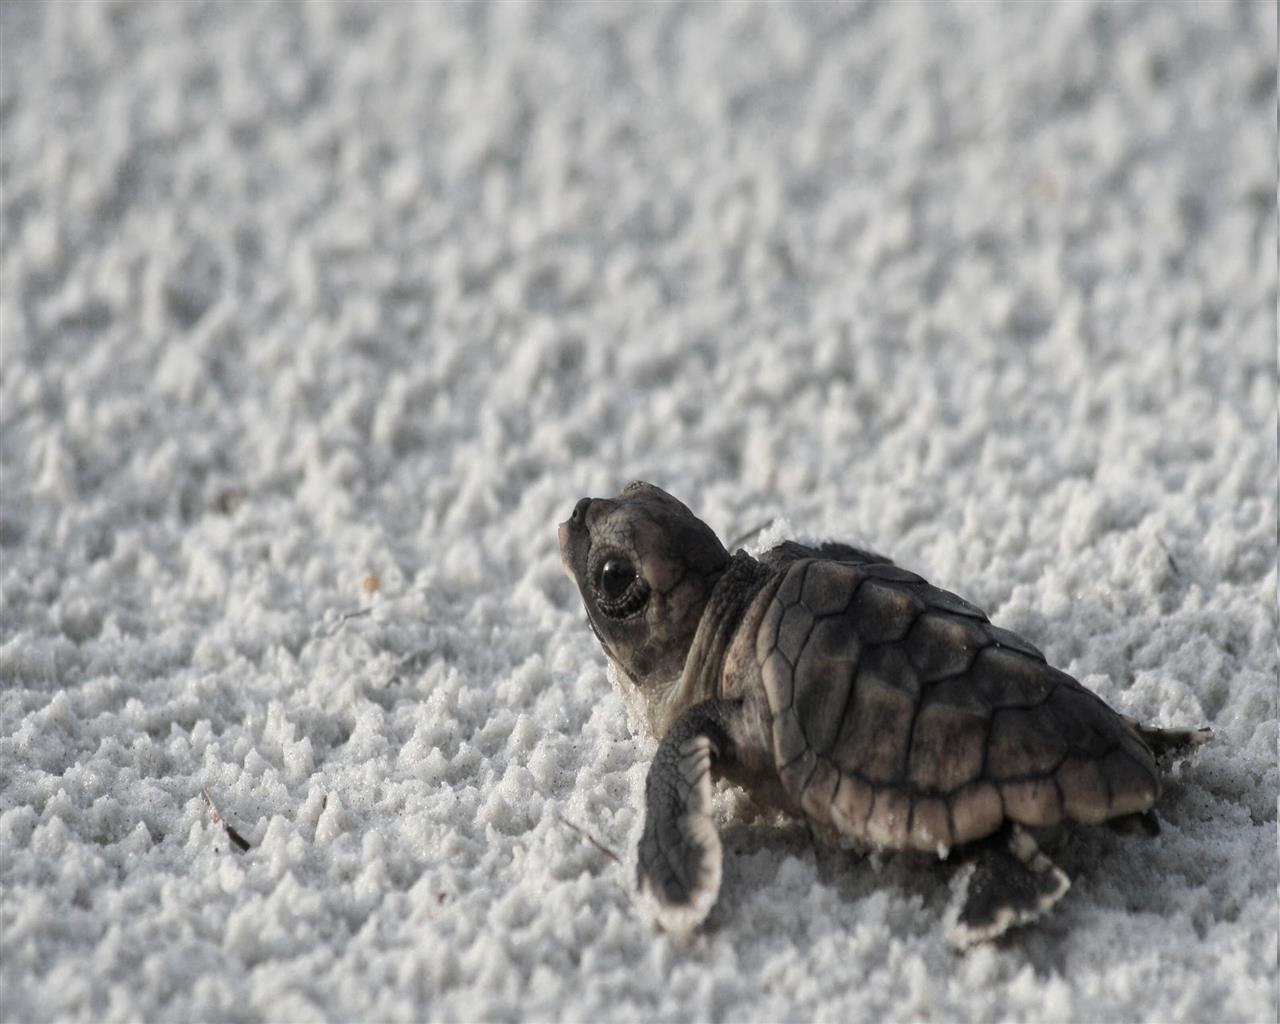 1280x1024 Baby Turtle on Beach